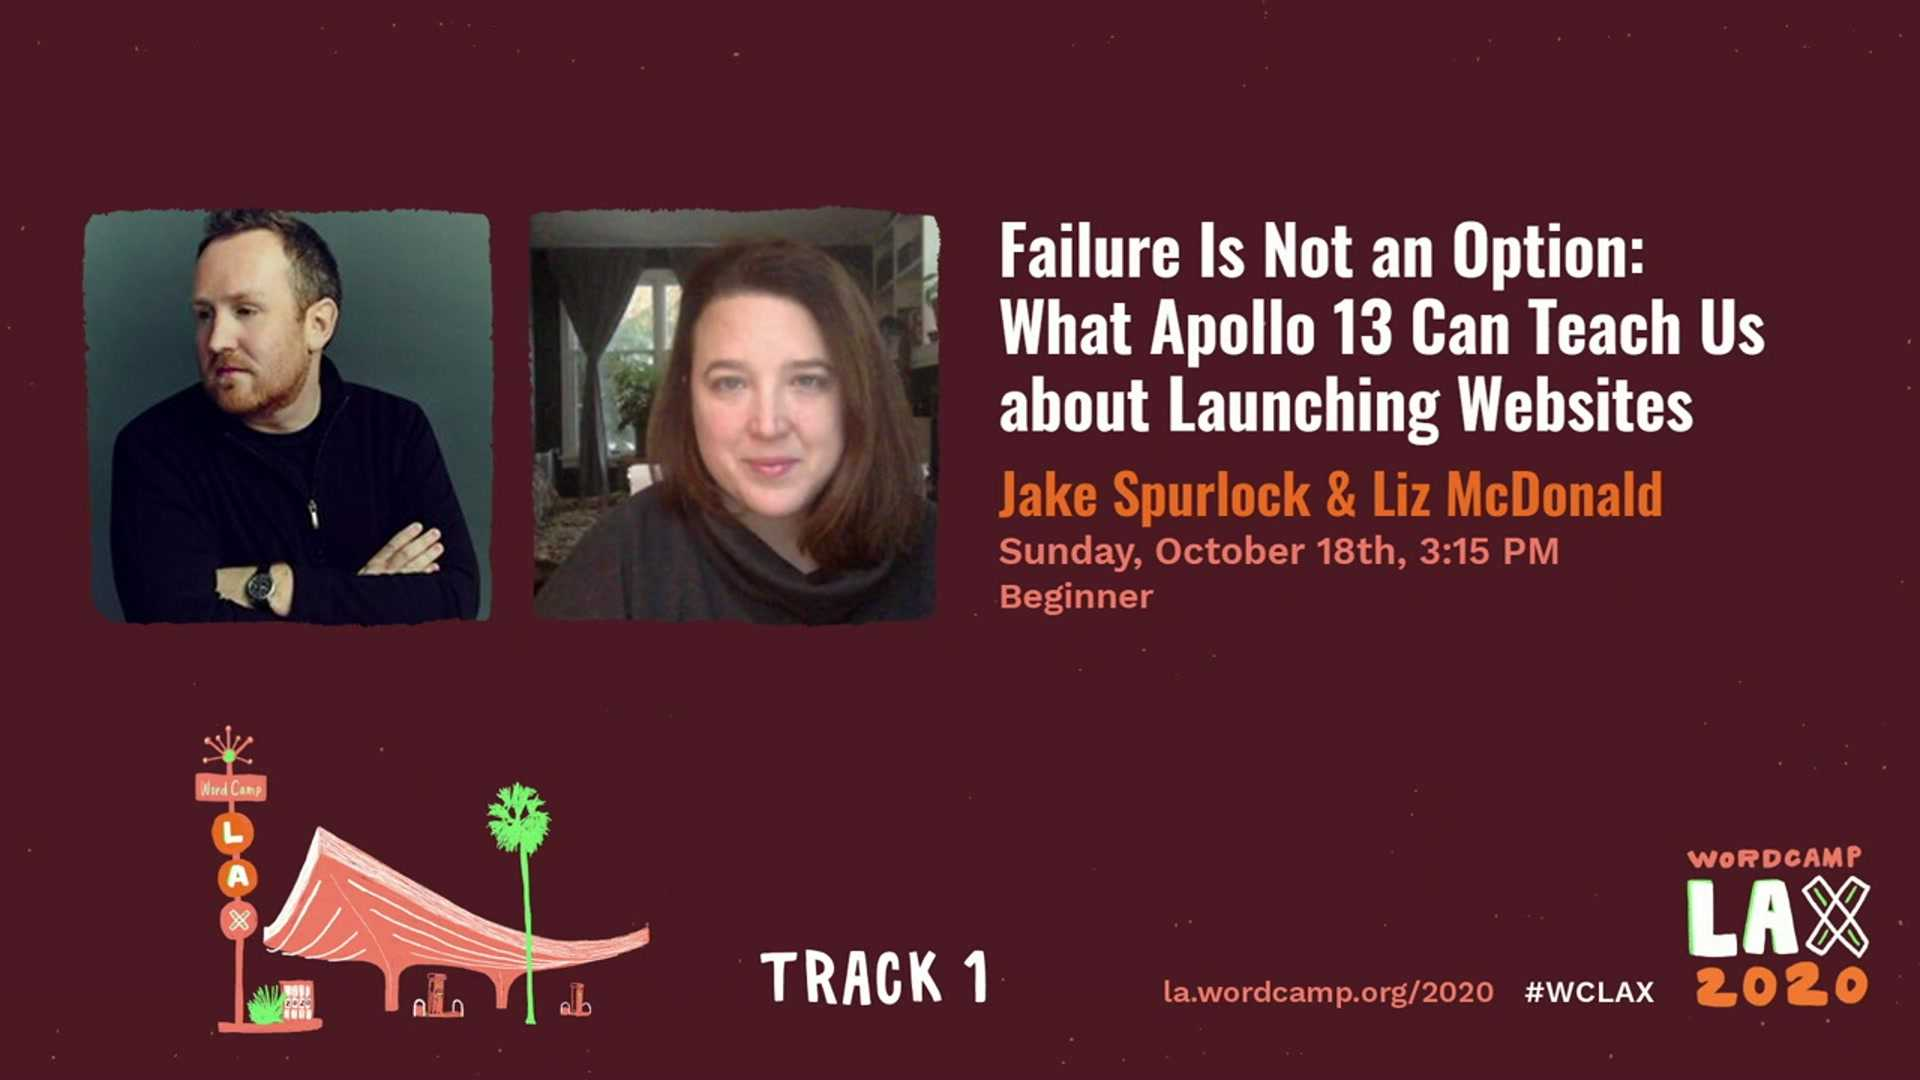 Jake Spurlock, Liz McDonald: Failure Is Not an Option: What Apollo 13 Can Teach Us about Launching Websites